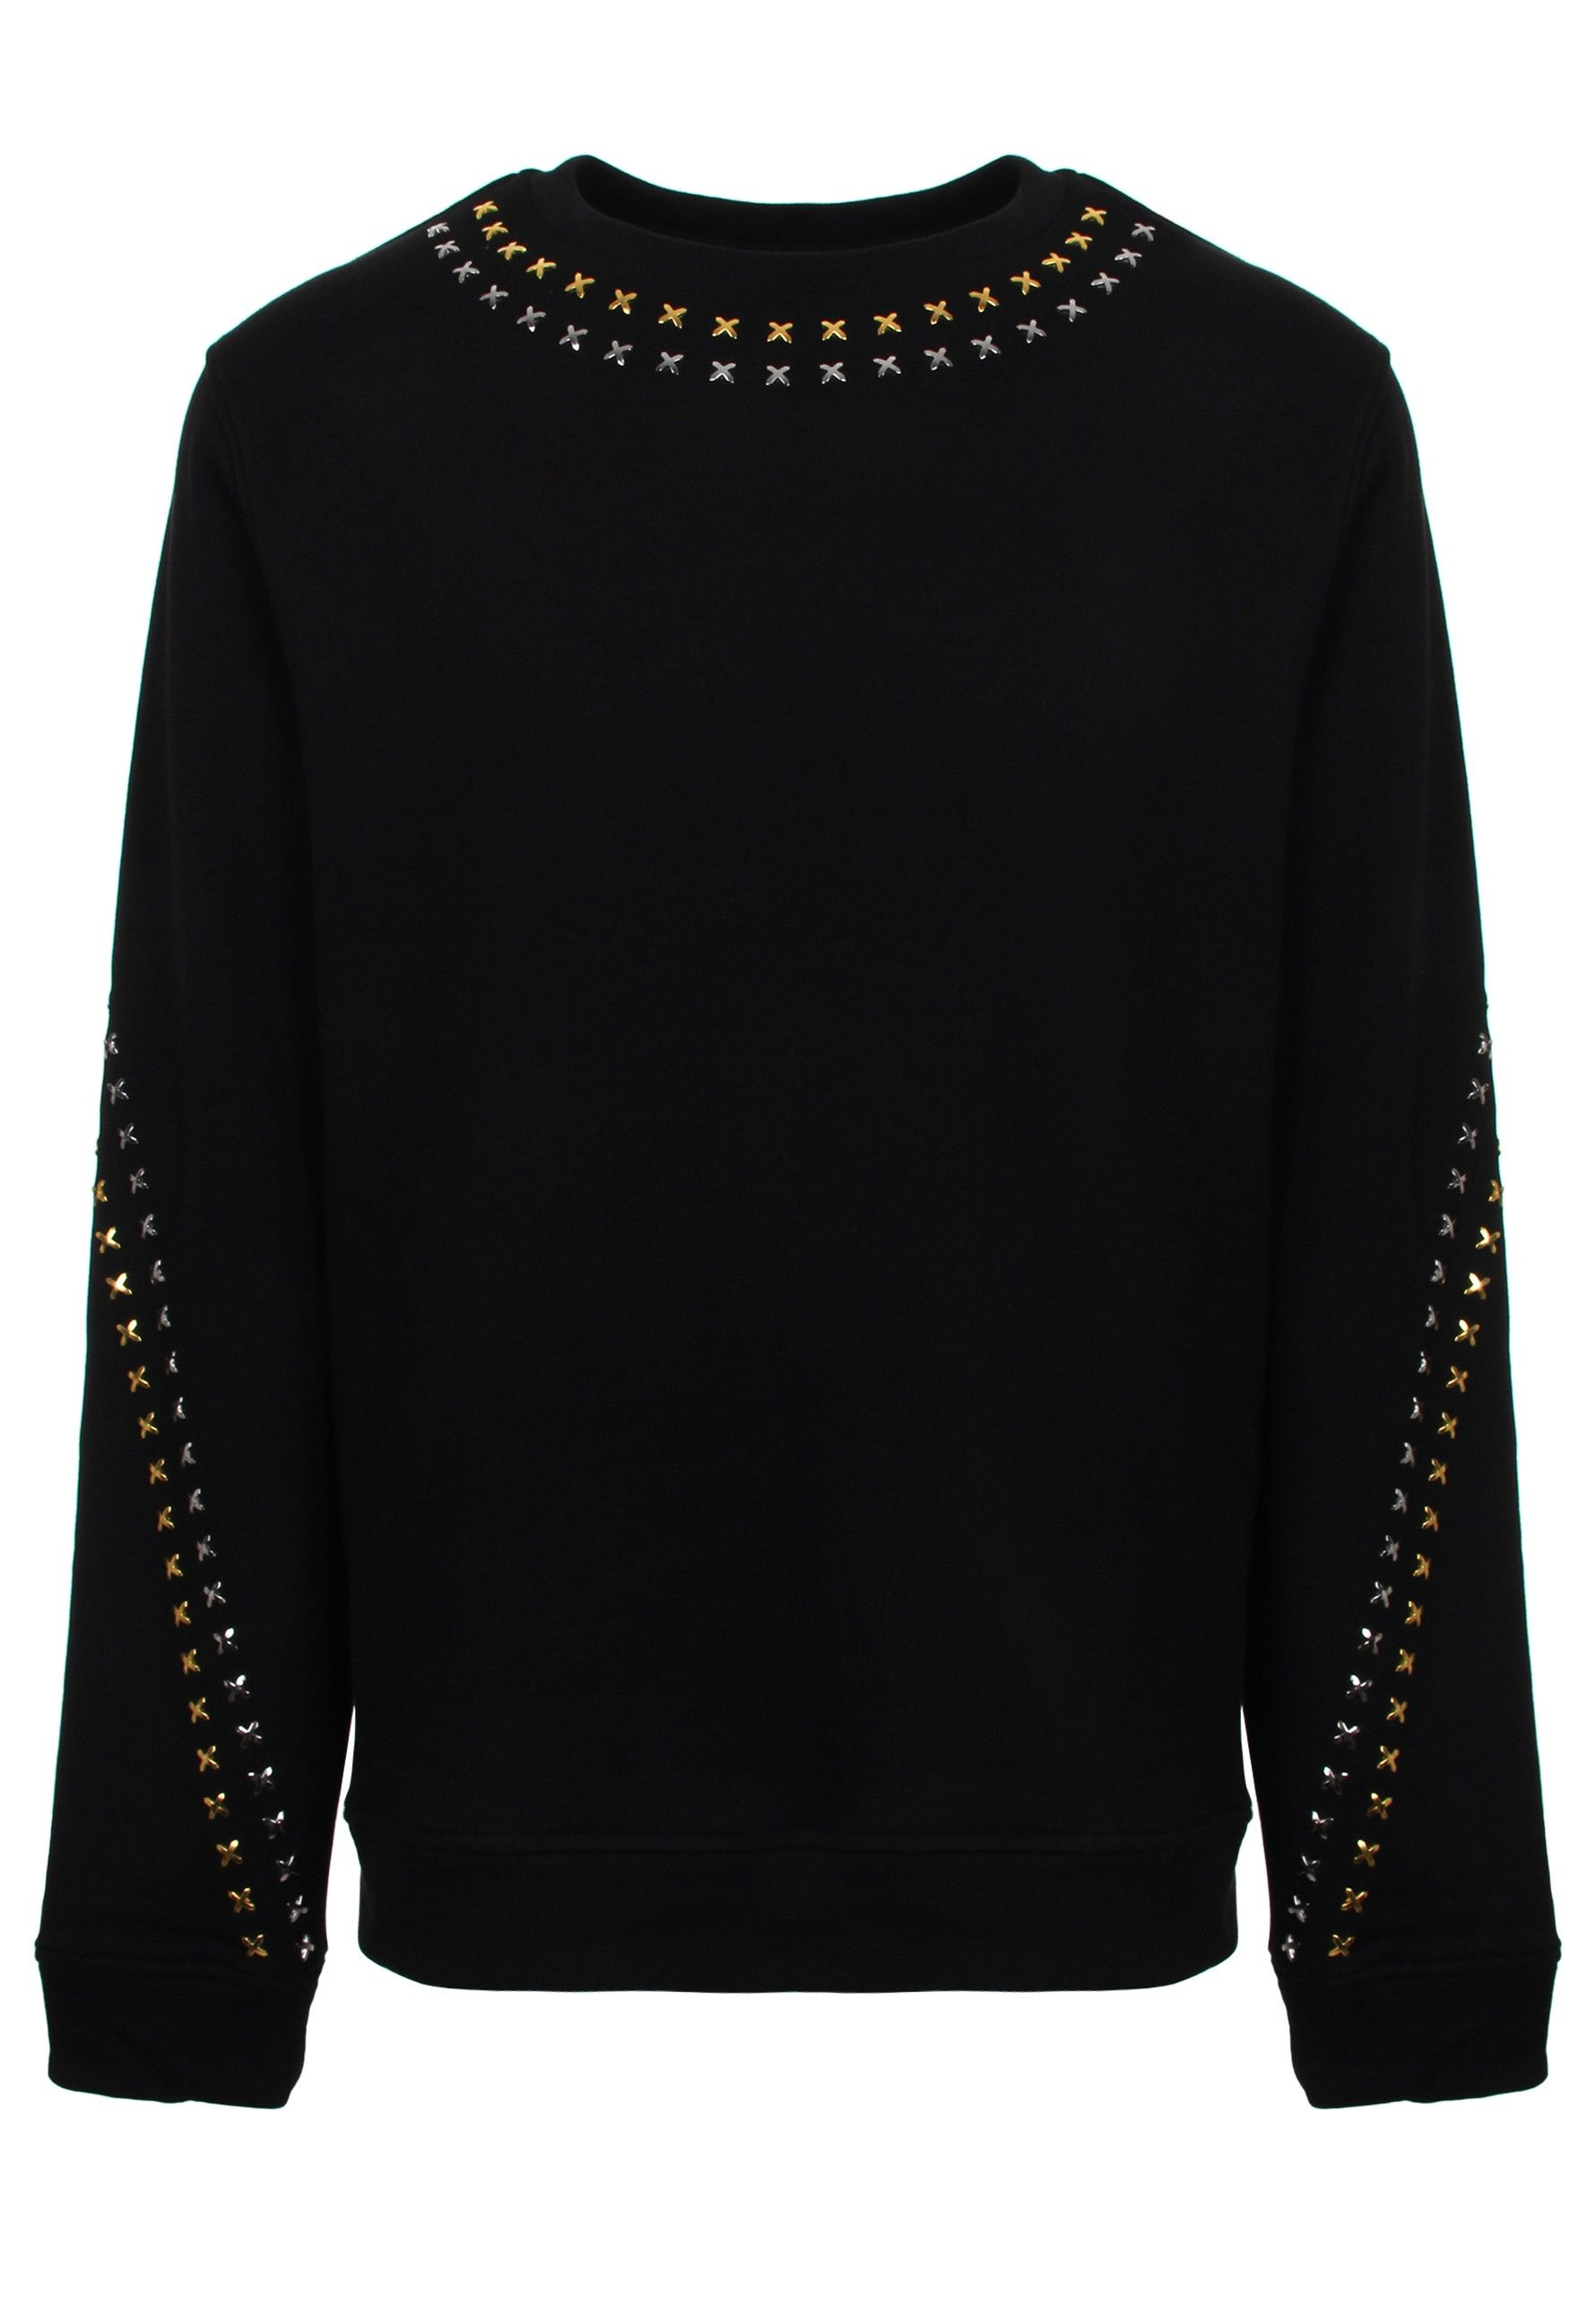 Cross Collection Classic Versace Studded Is Collection's Silver With In Black Sweatshirt Embellished pn5a0qdxwa